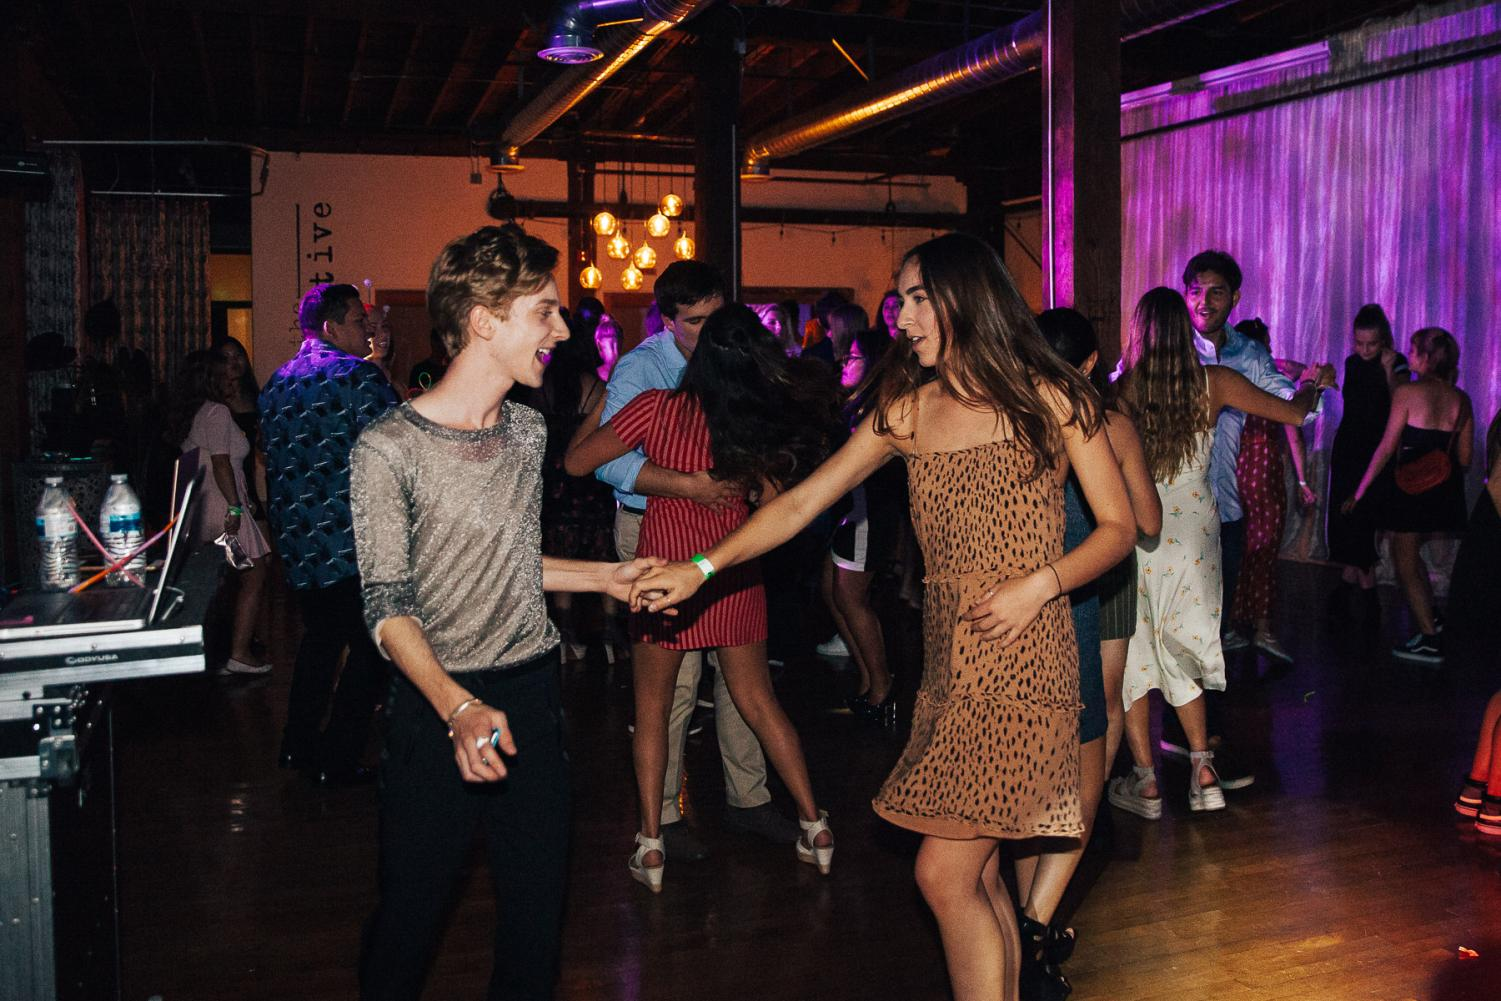 Sunny De'Vries Paulson dances and laughs with Haley Kittleson during the American Prom for International Students on Thursday, April 25, 2019, at The Narrative Loft in Santa Barbara, Calif.